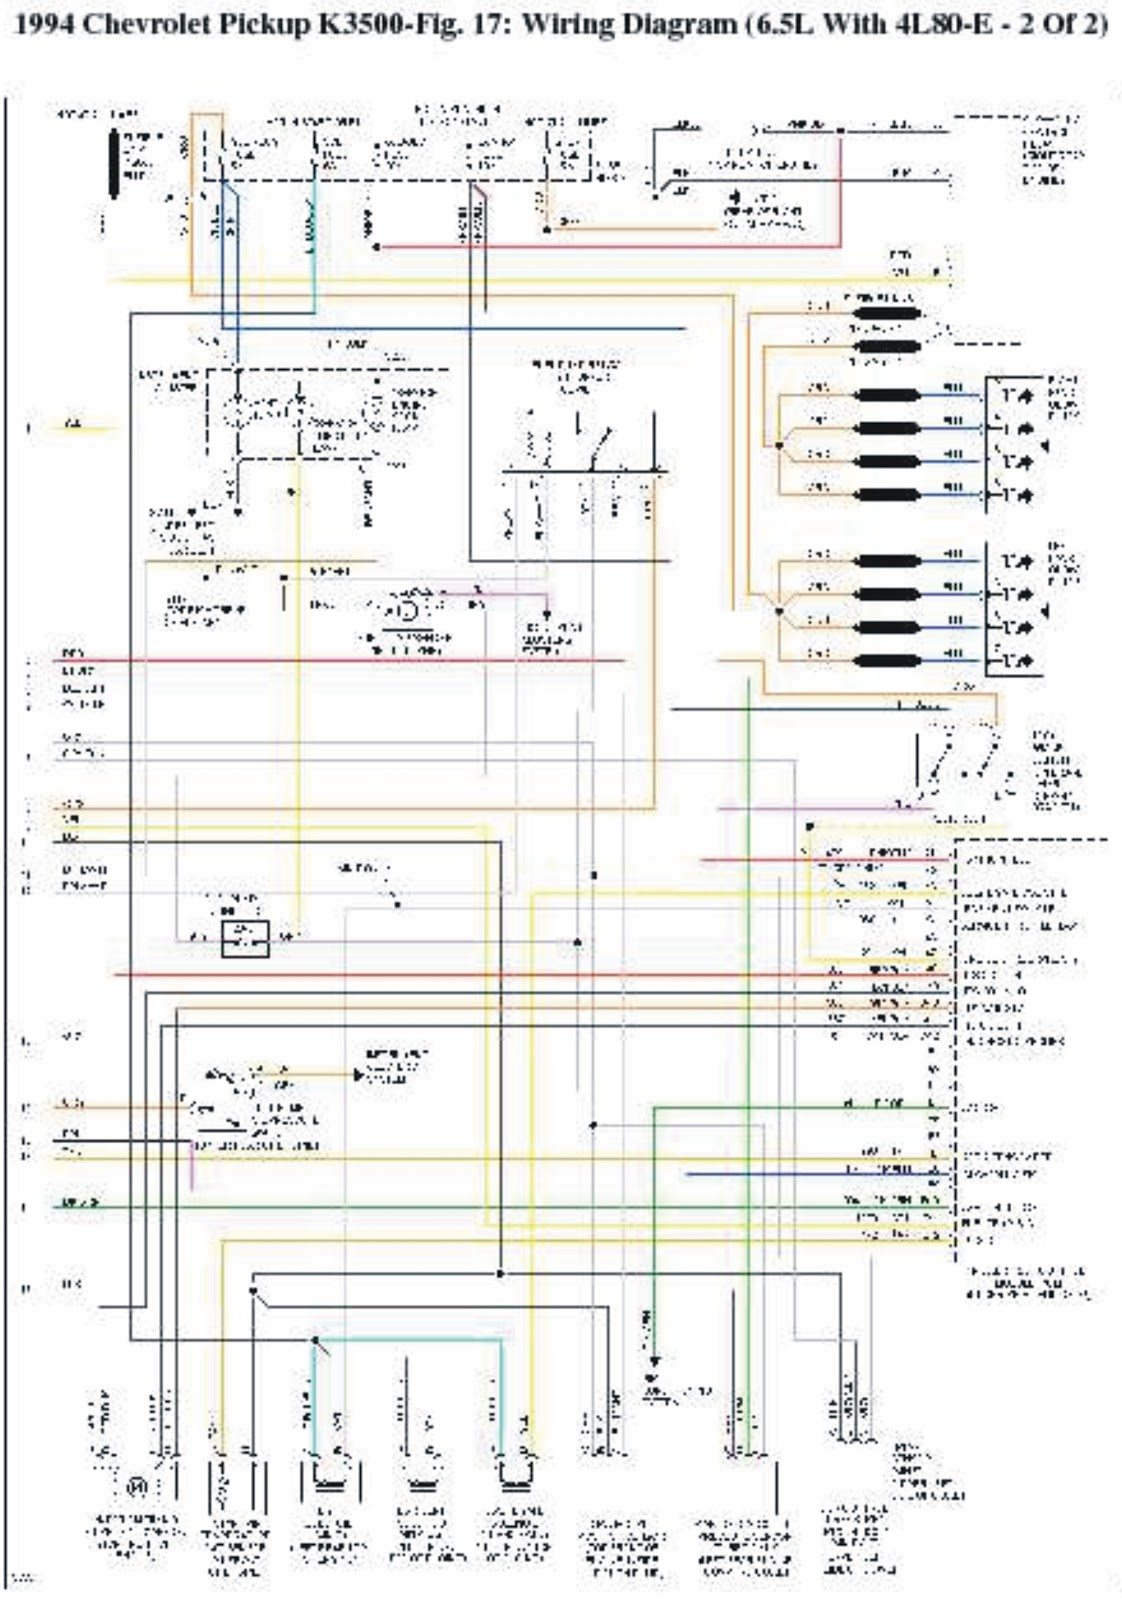 1994 chevrolet pick up k3500 wiring diagrams wiring diagrams center rh wiringdiagramsolution blogspot com 1994 chevy wiring diagram 1994 chevrolet silverado wiring diagram